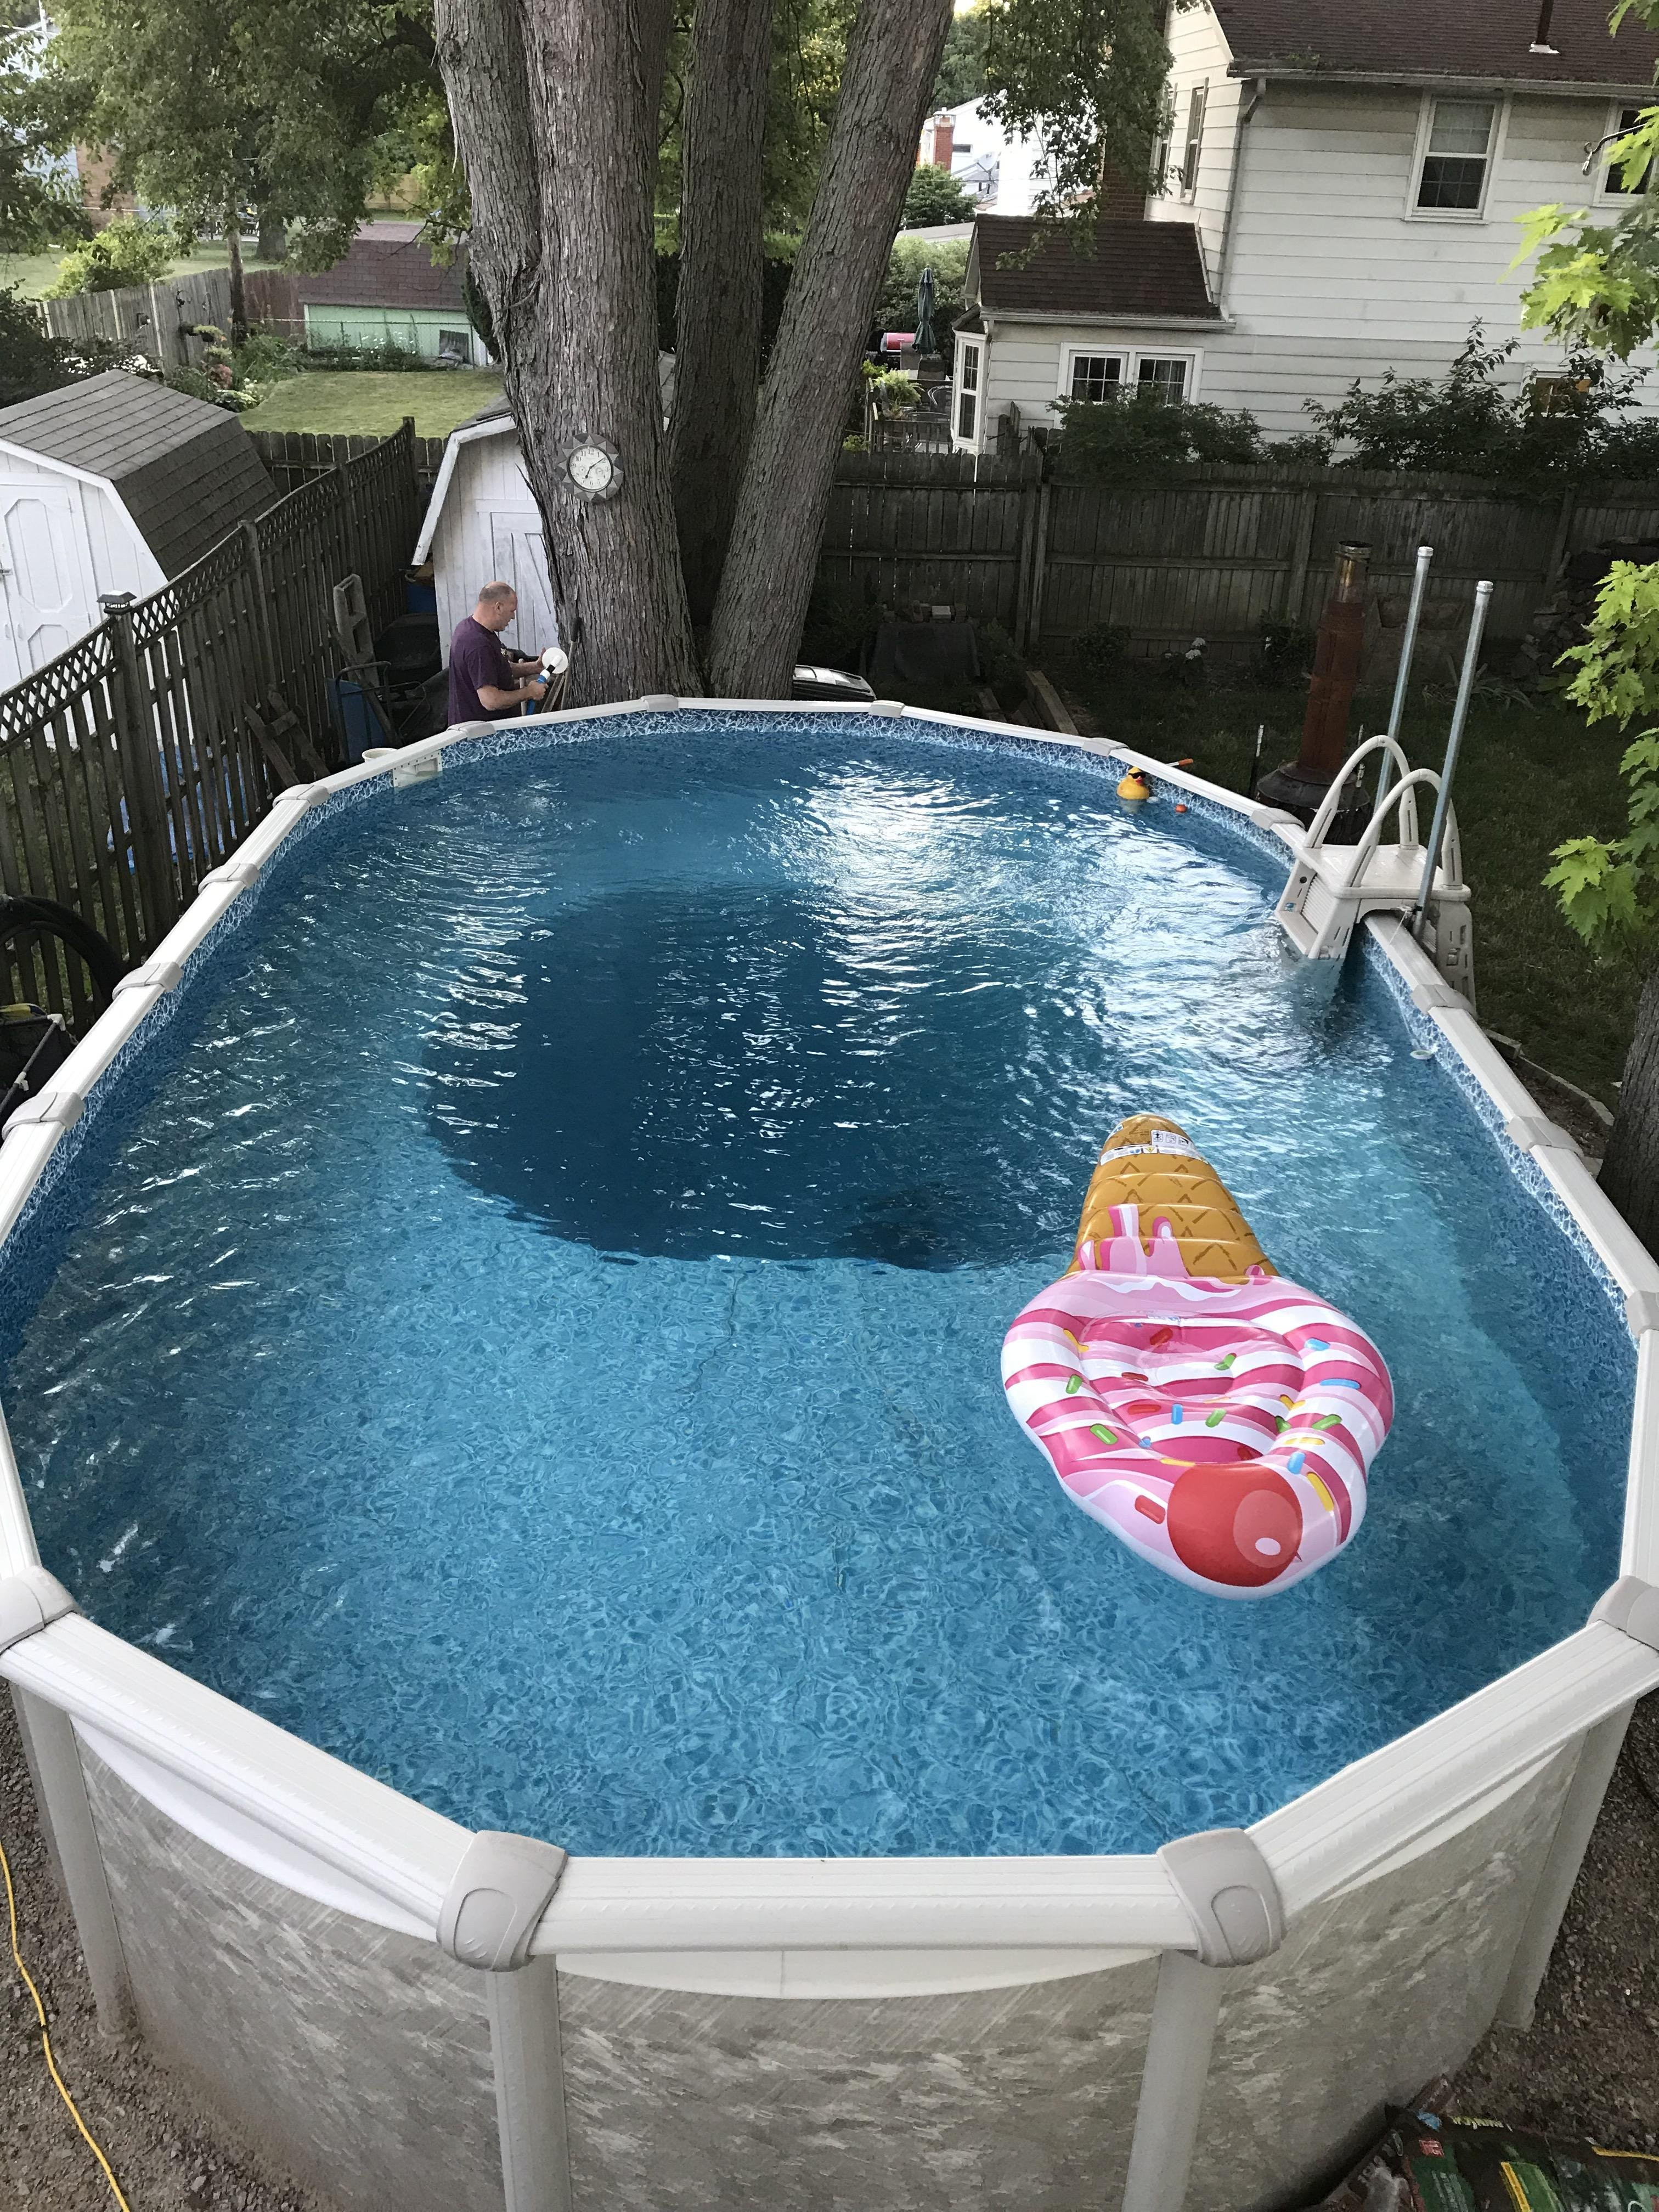 Best ideas about Deepest Above Ground Pool . Save or Pin My above ground pool has a 13 foot deep pit Now.